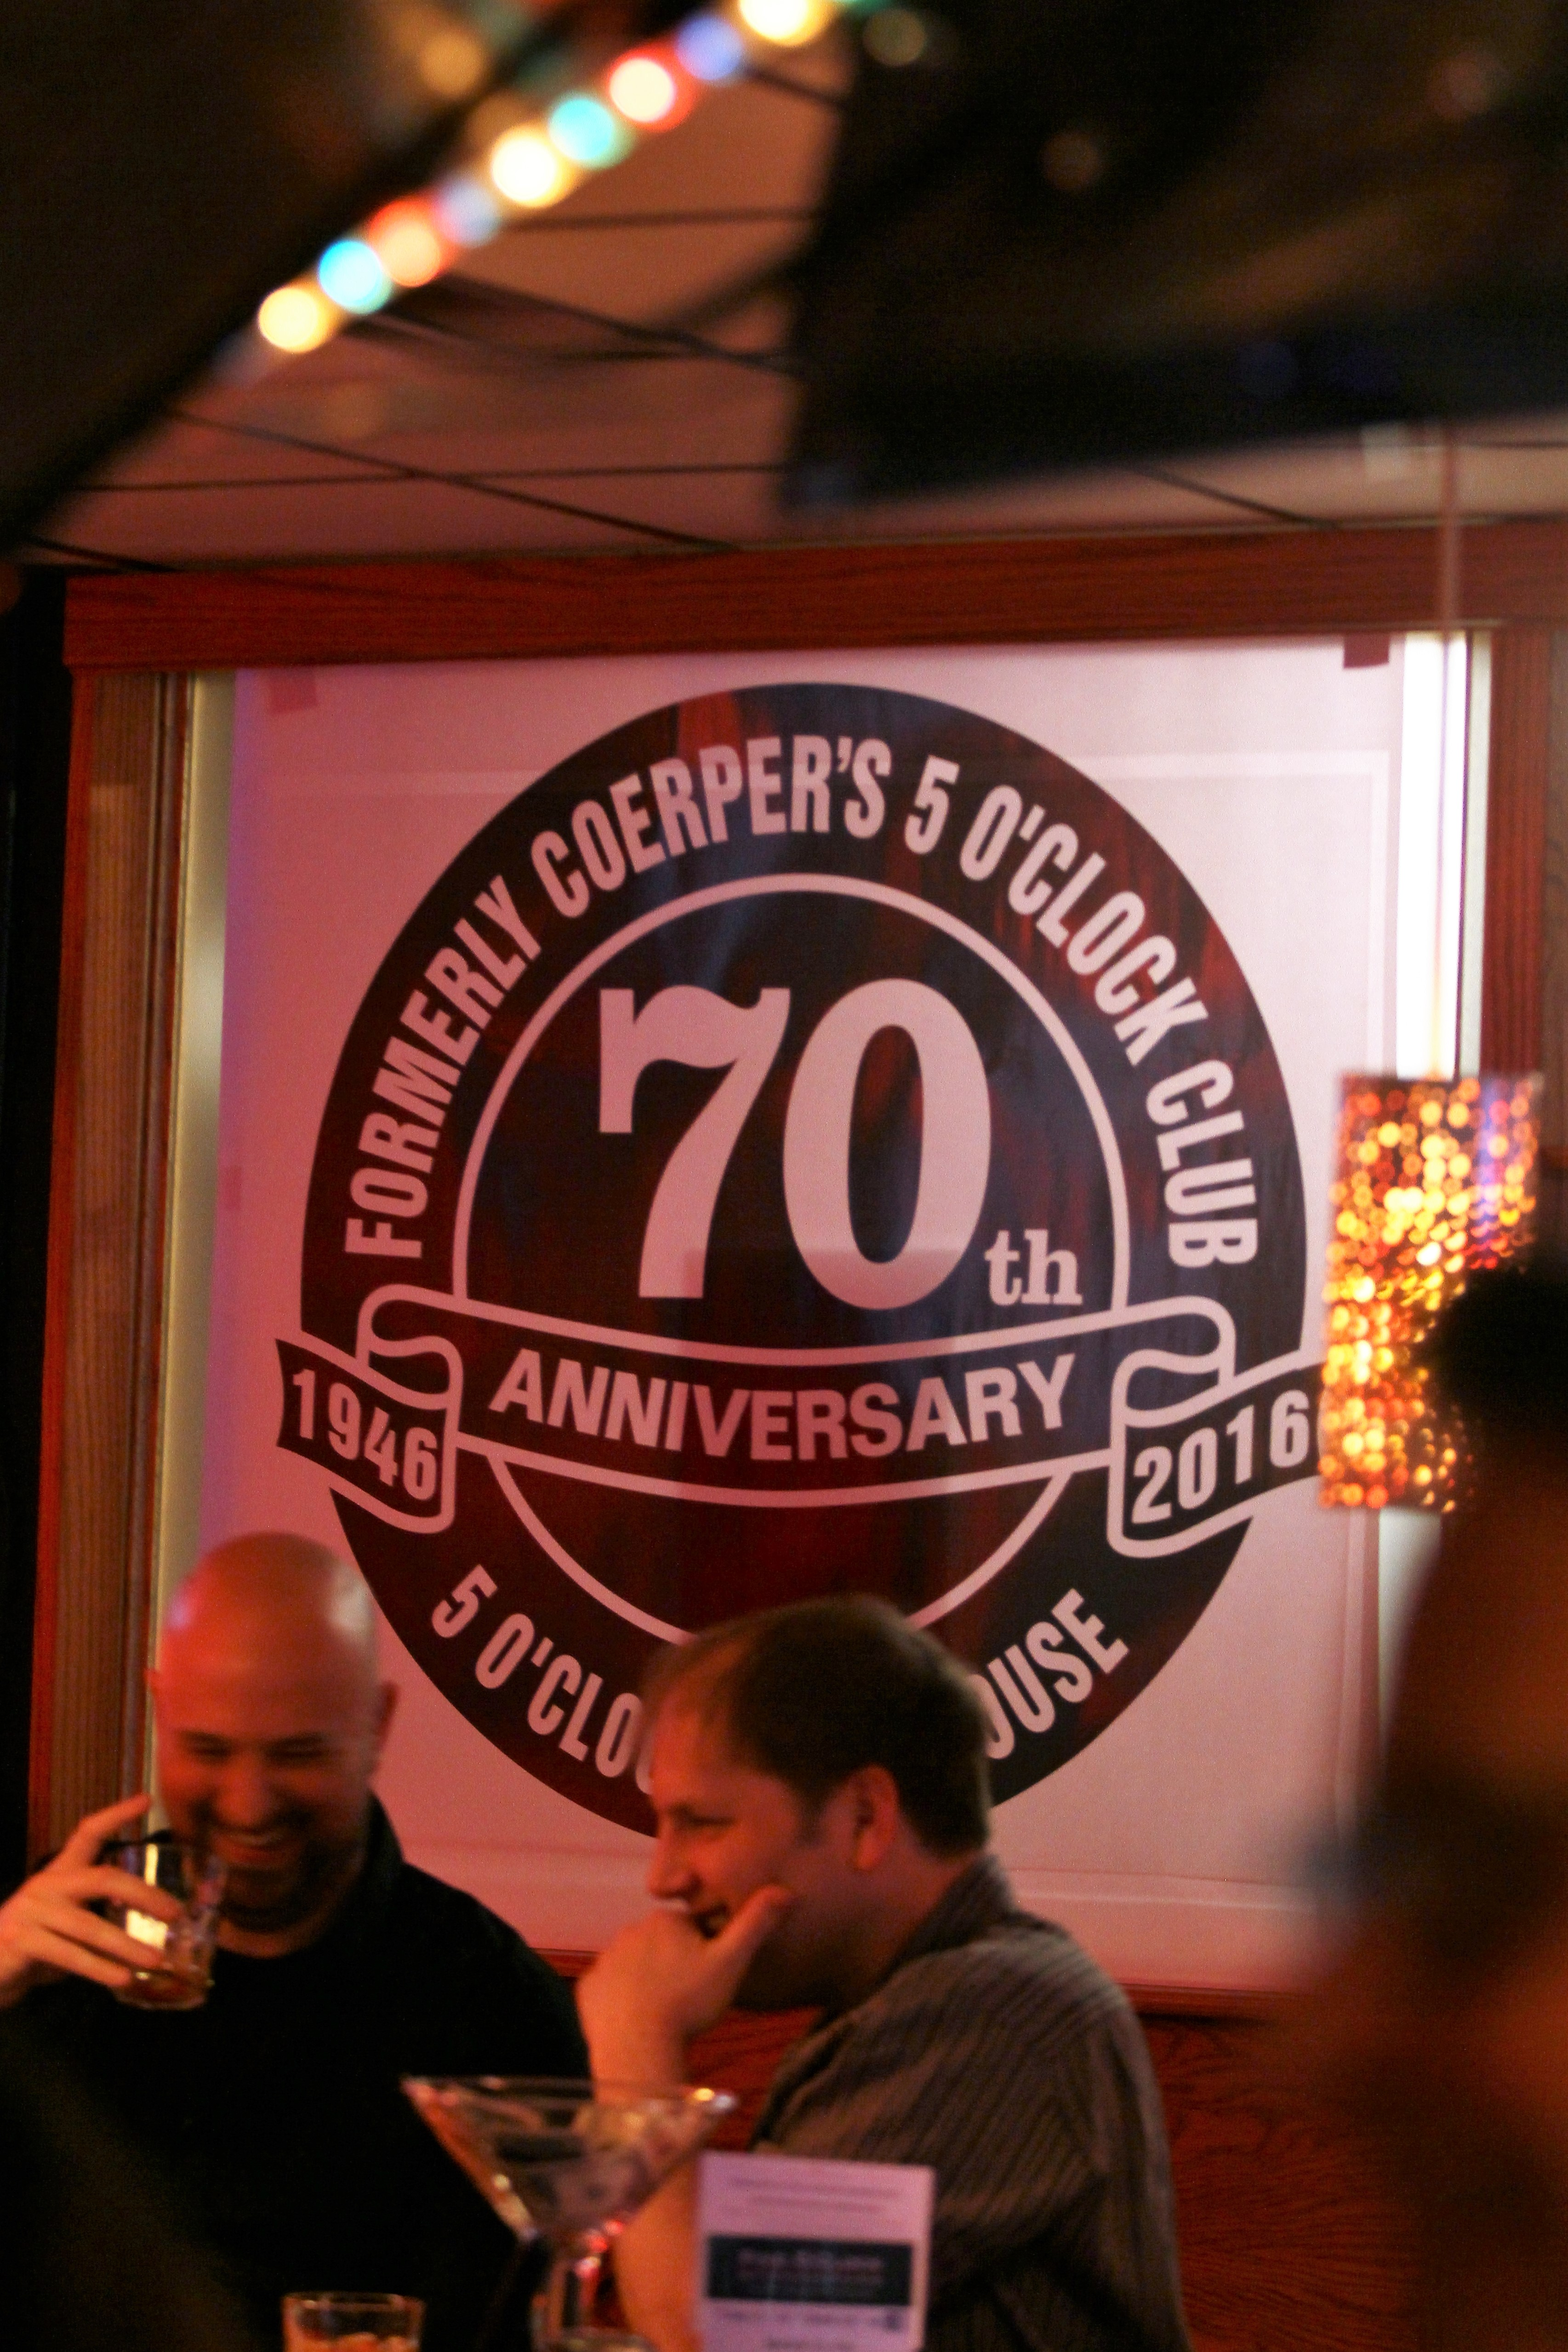 Five O'Clock Steakhouse is Celebrating Its 70th Anniversary